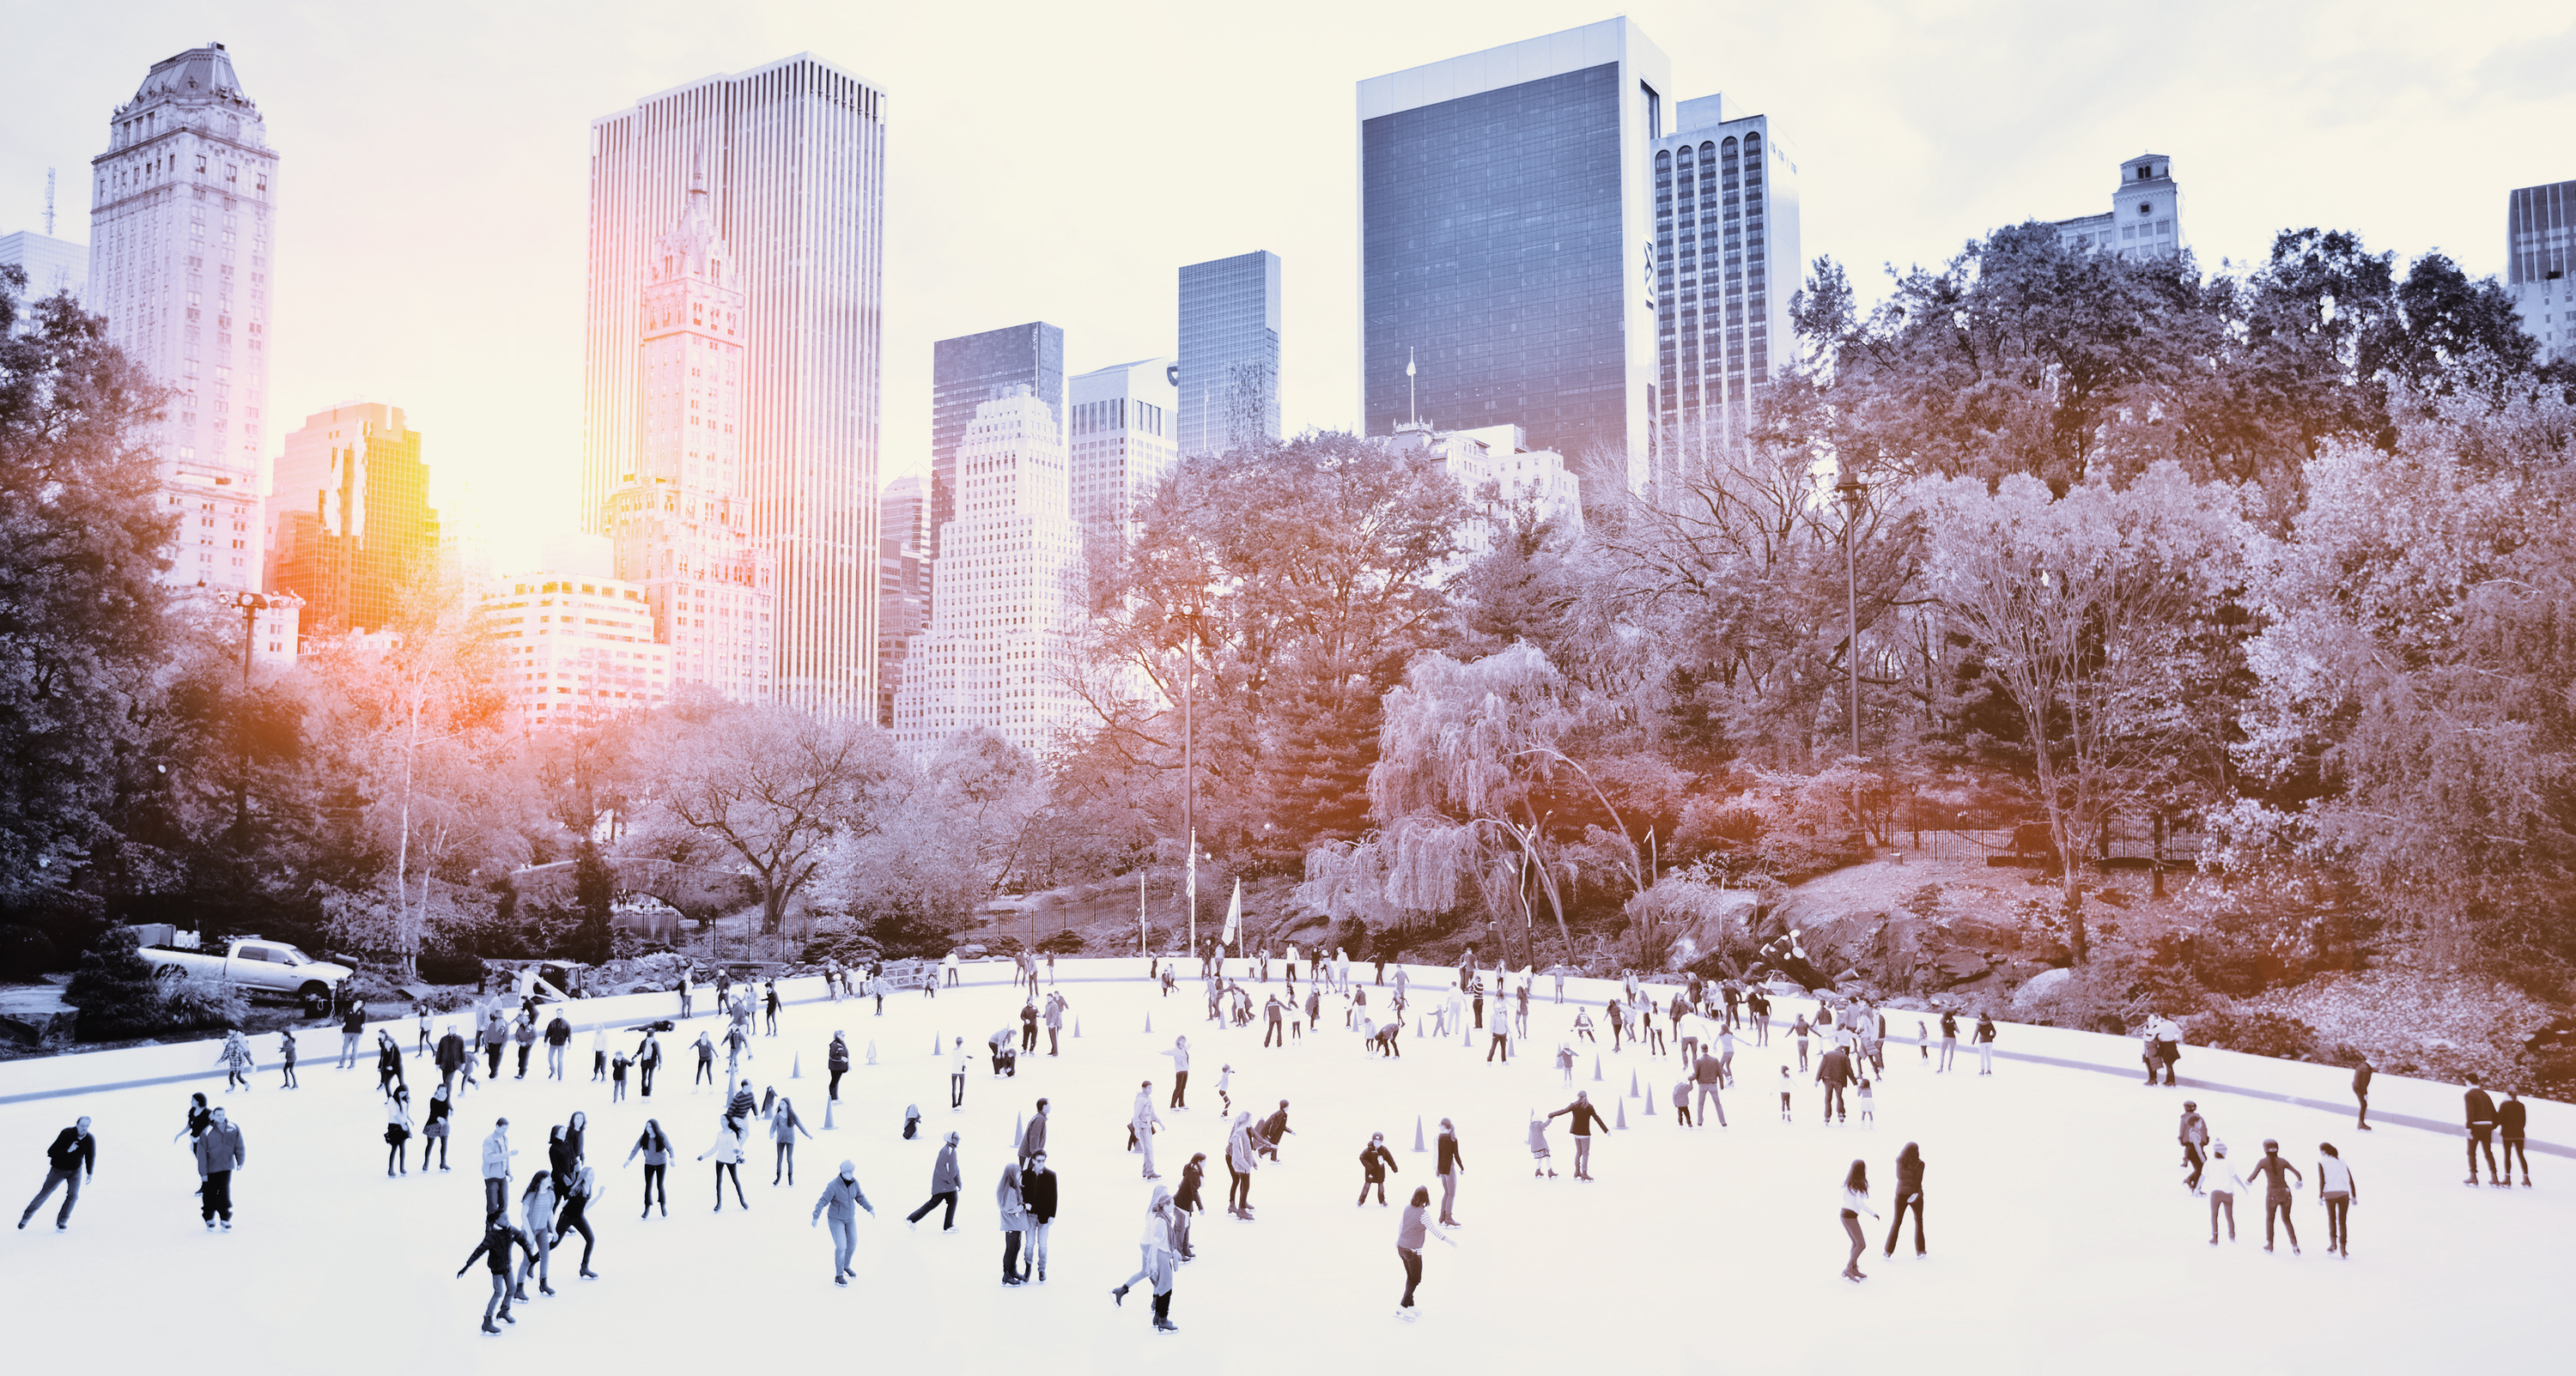 Best 50 winter activities for kids in NYC